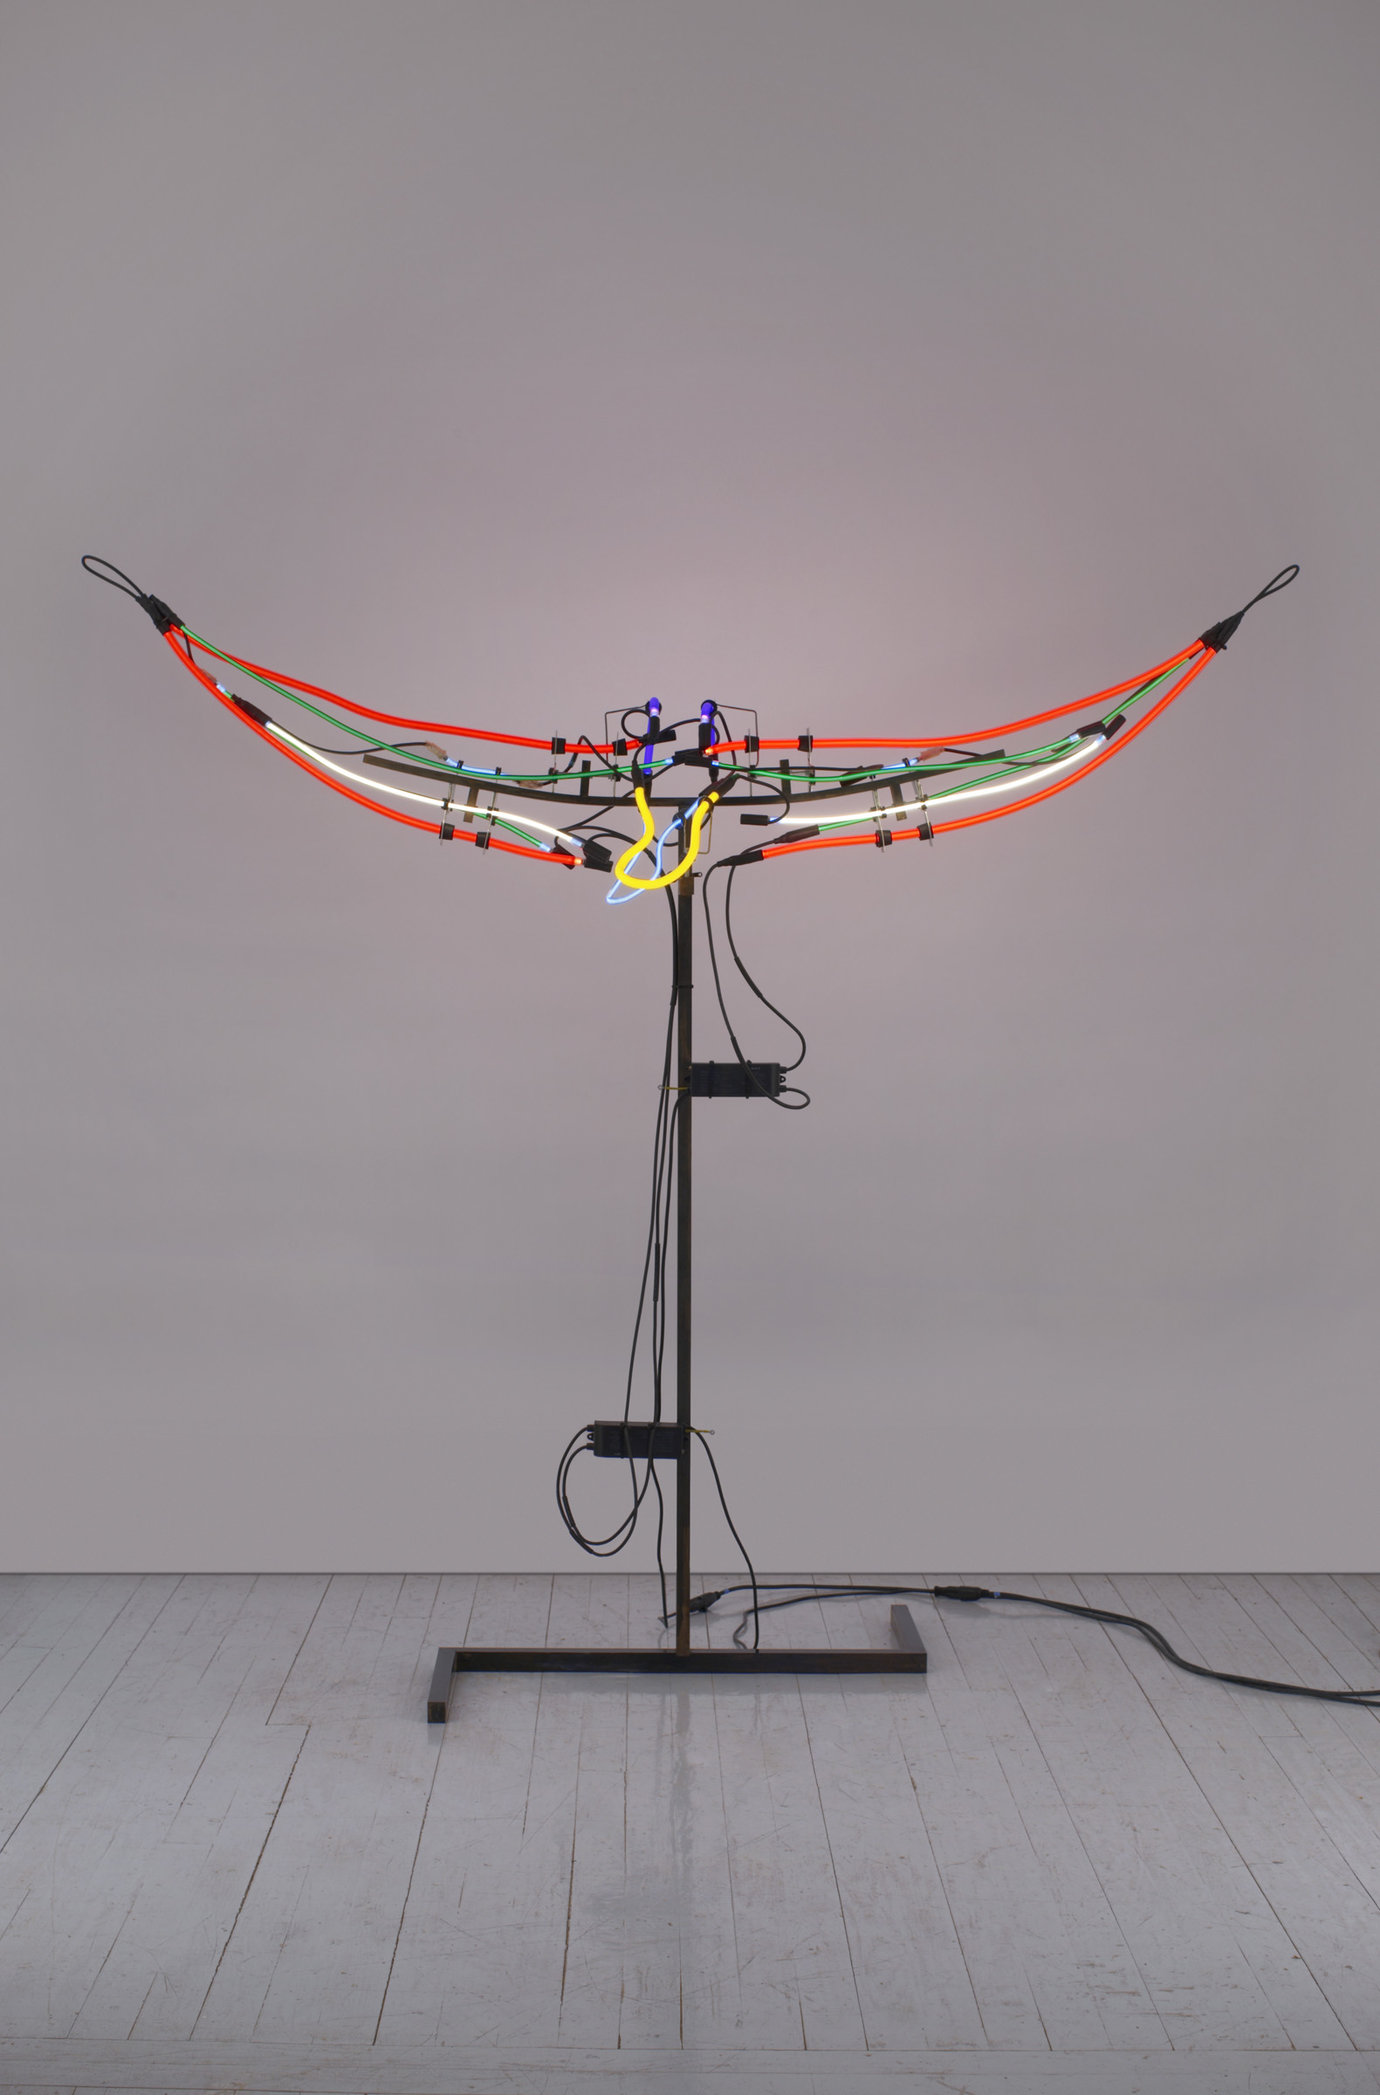 ", 2007. Steel, neon, paint, aluminum, neoprene, rubber, and transformer, 82"" x 90"" x 28"" (208.3 cm x 228.6 cm x 71.1 cm)."